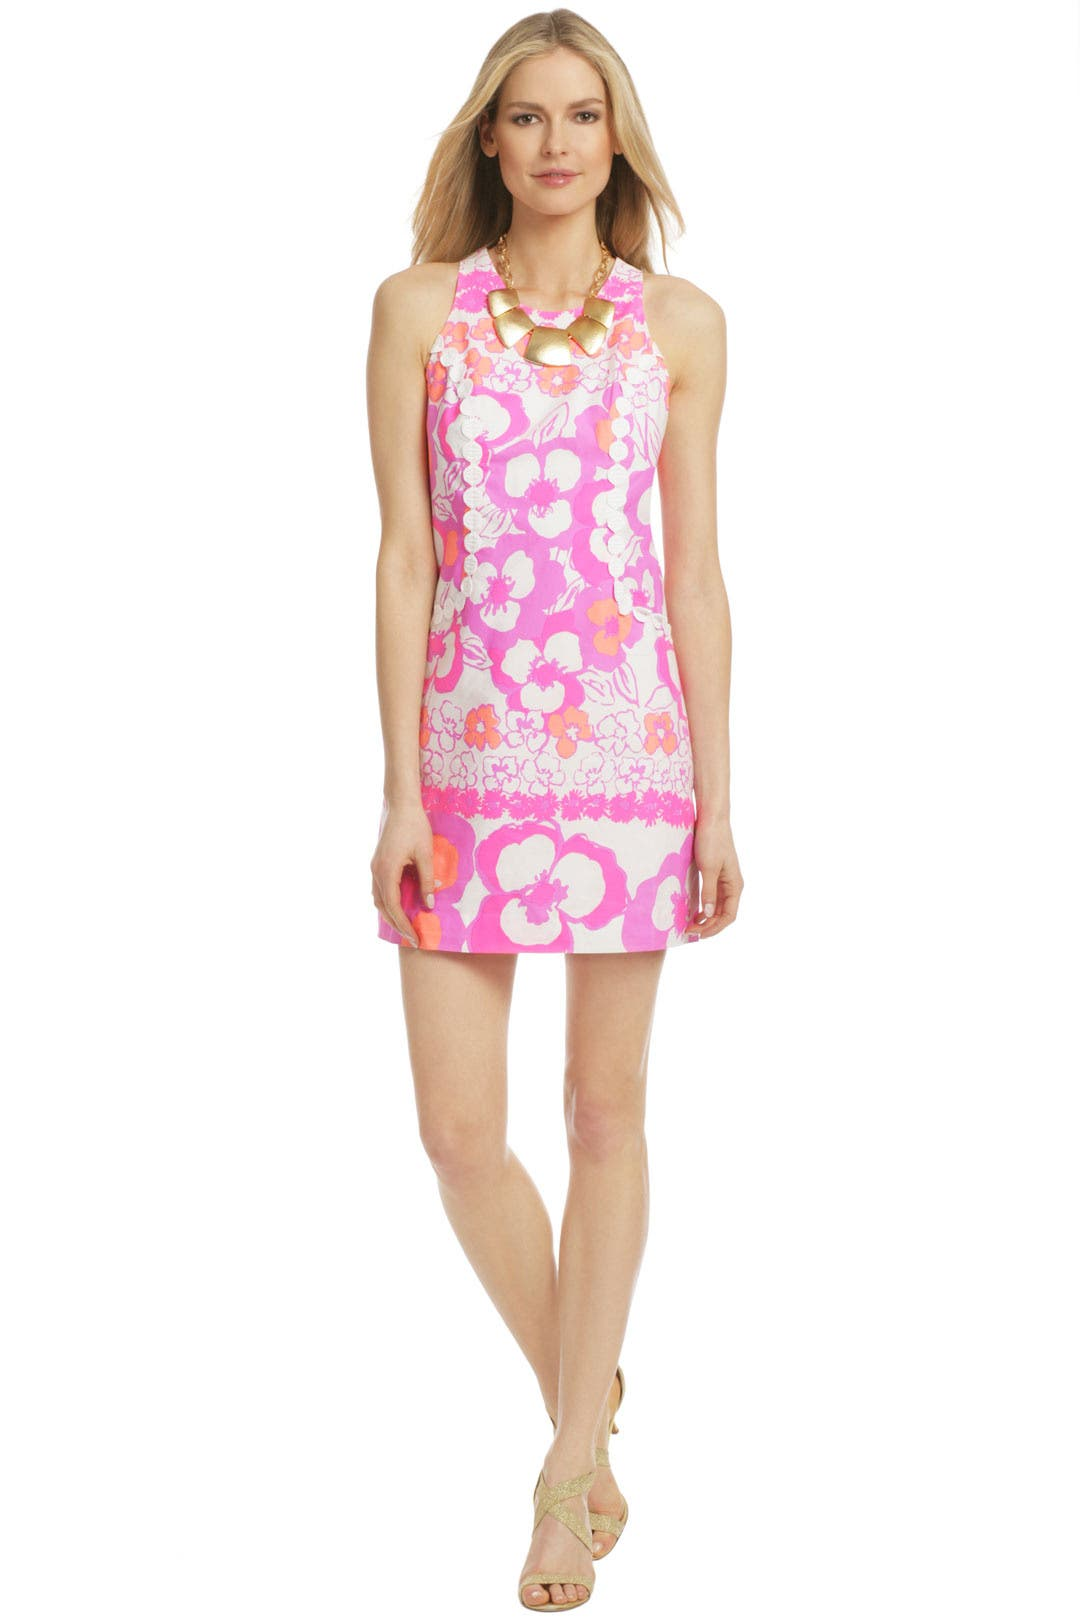 Didi Dress by Lilly Pulitzer